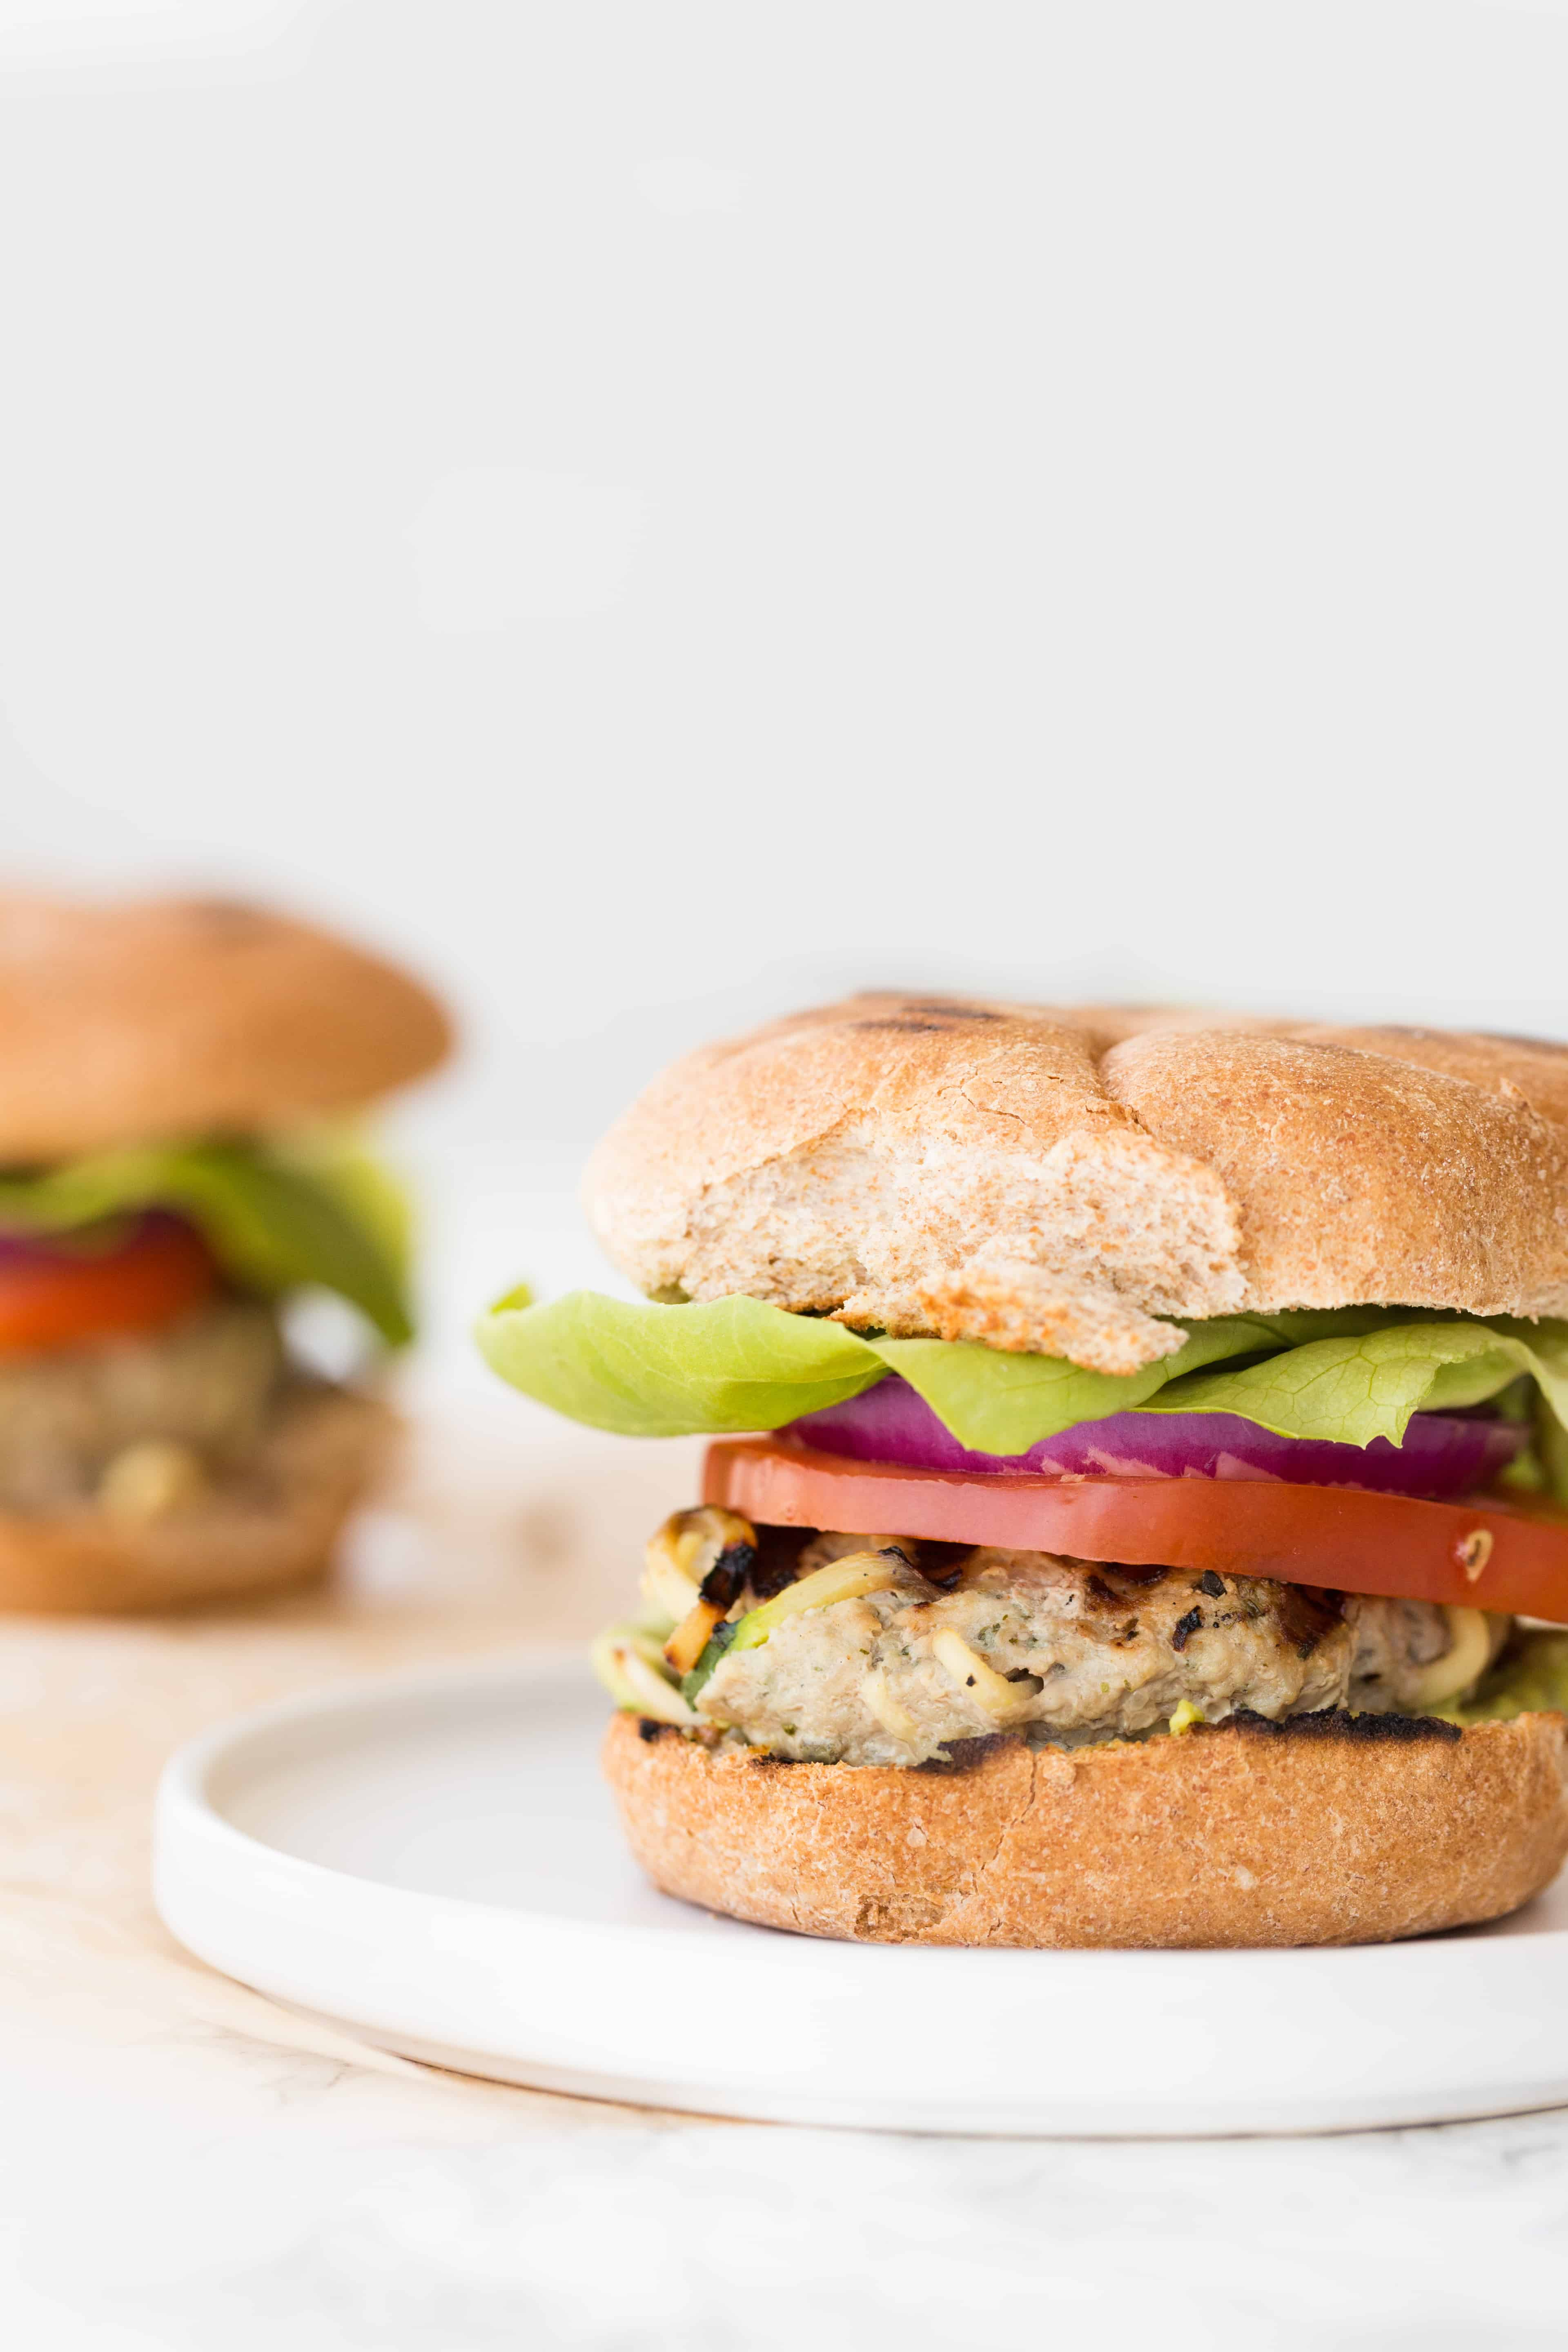 Turkey Burger with Zucchini Noodles